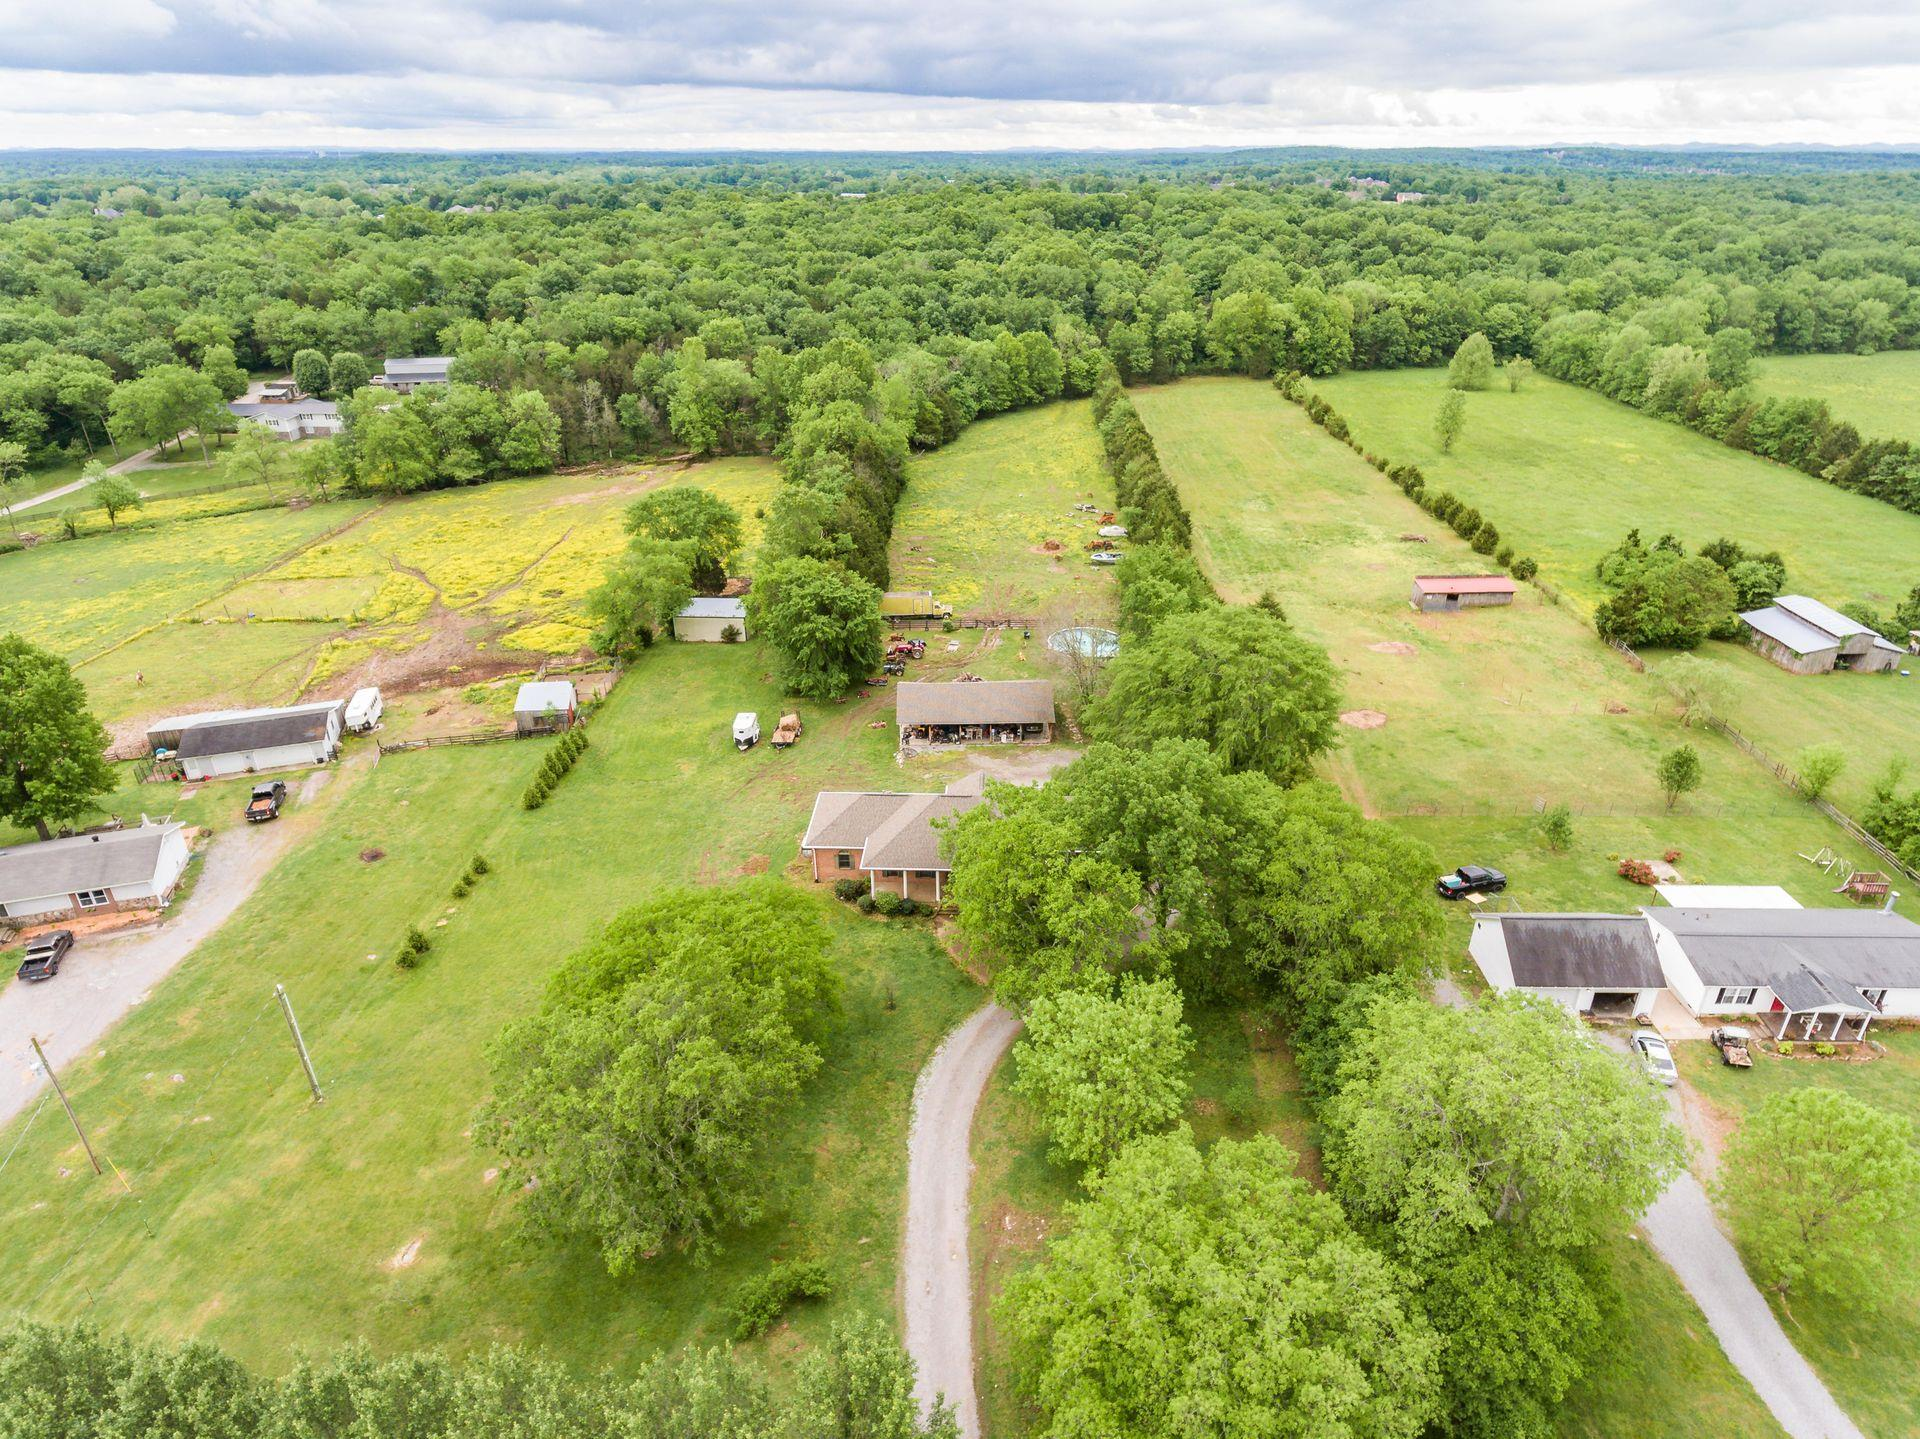 1525 Harkreader Rd, Mount Juliet, TN 37122 - Mount Juliet, TN real estate listing